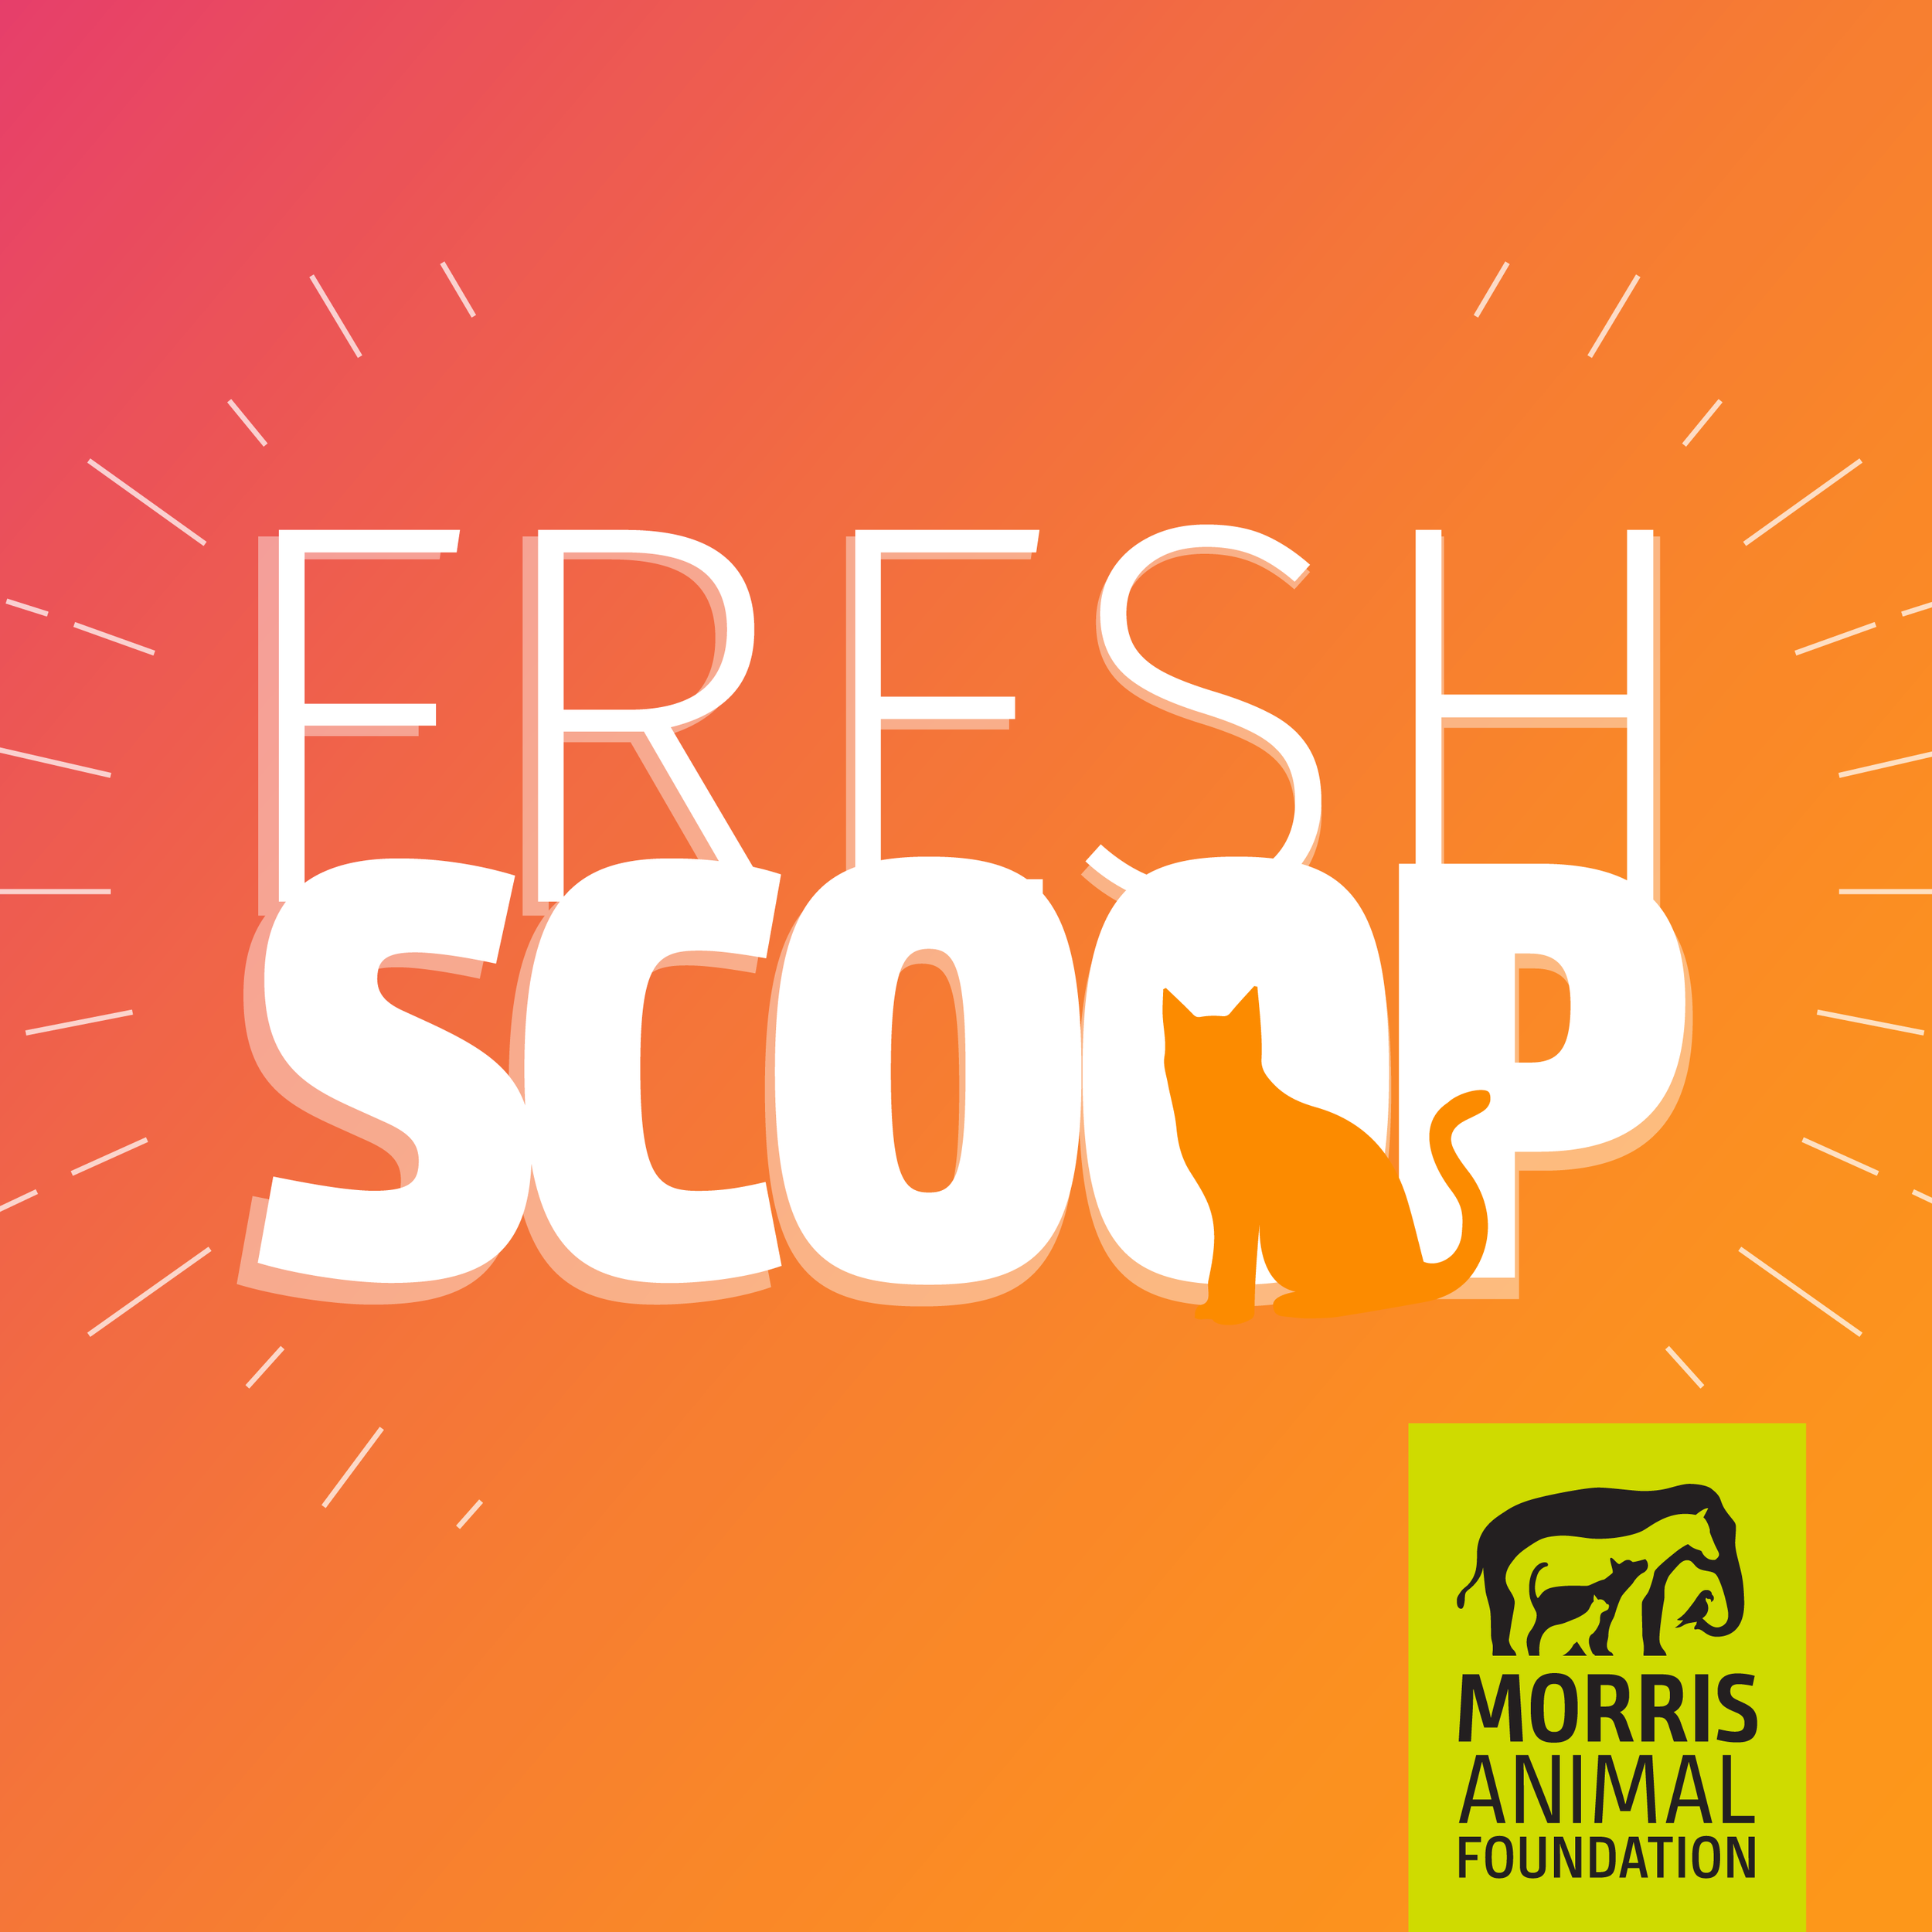 Fresh Scoop, by Morris Animal Foundation